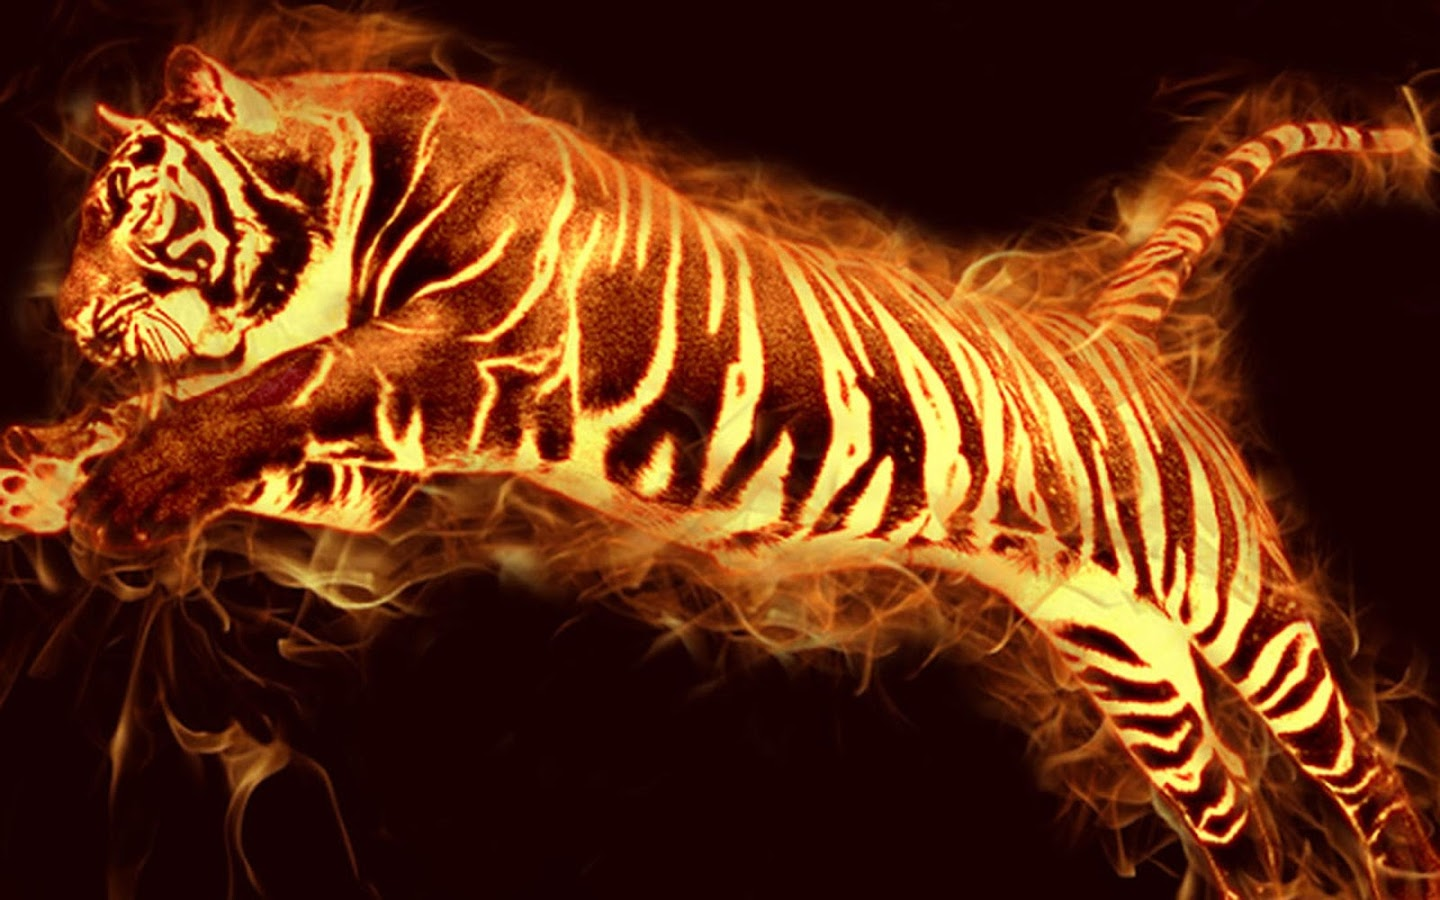 Tigre 3d 1920x1080 fonds d 39 cran hd for Fond ecran 3d